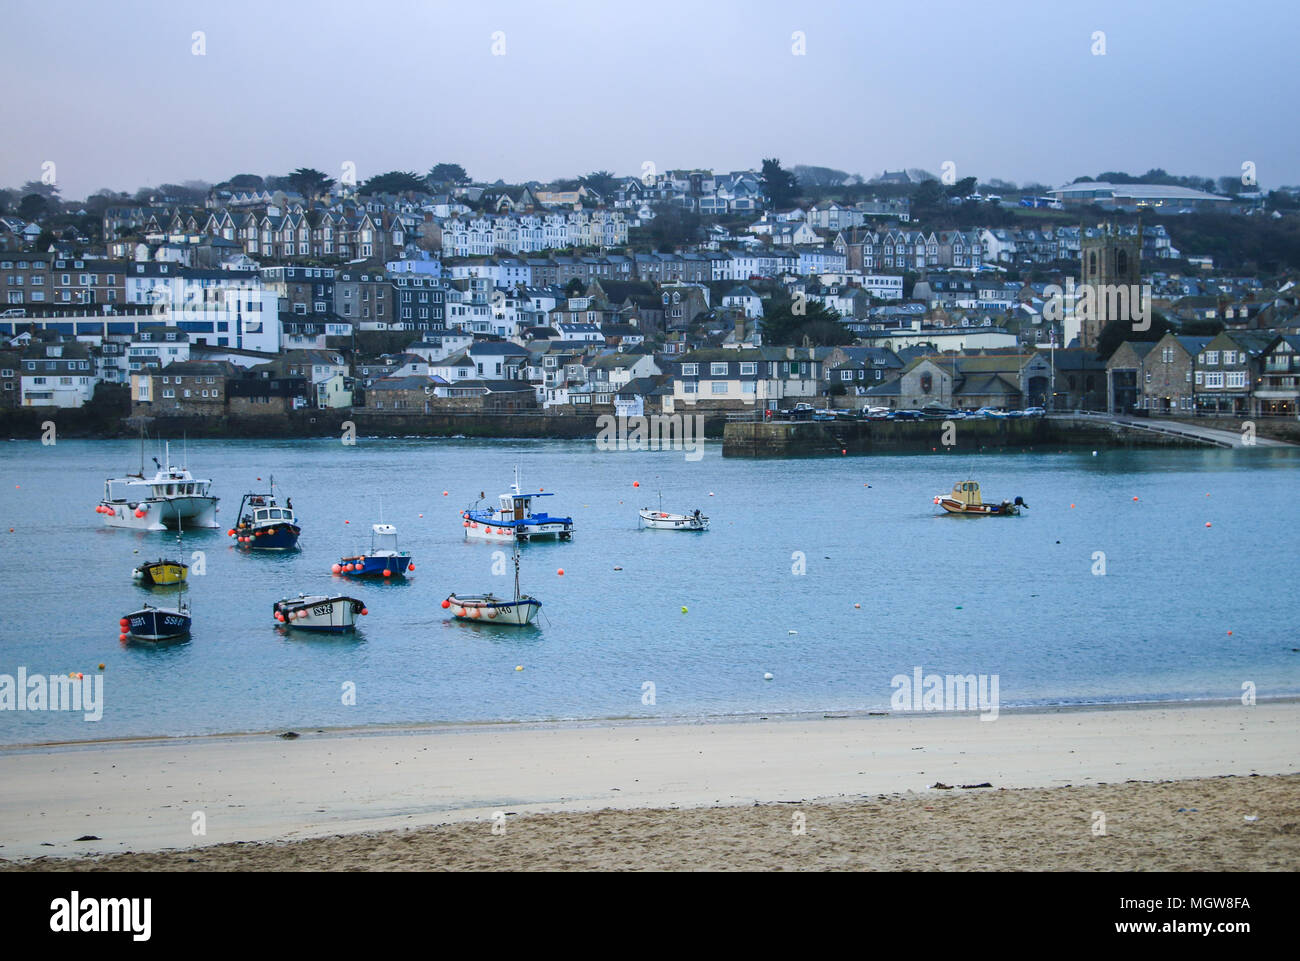 St Ives Harbour - Stock Image